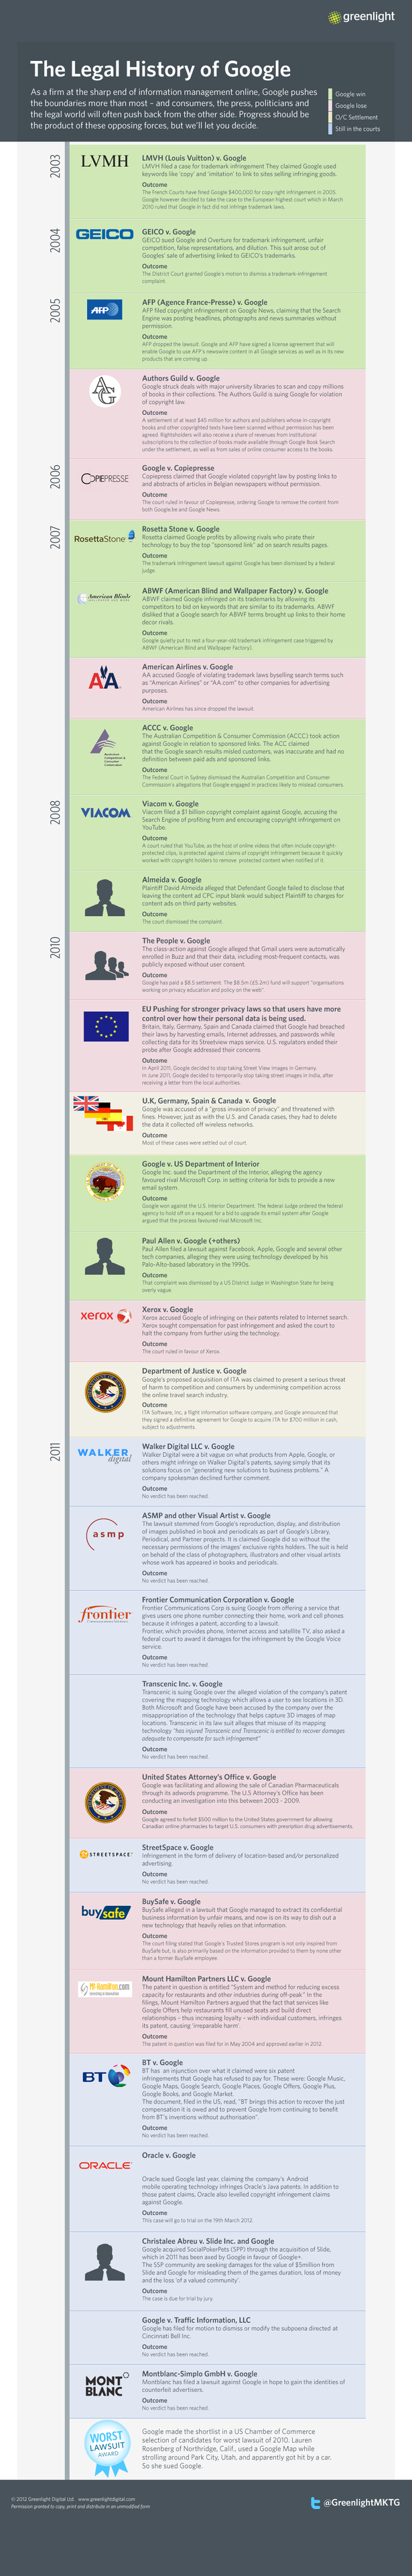 Greenlight infographic charting the legal history of Google